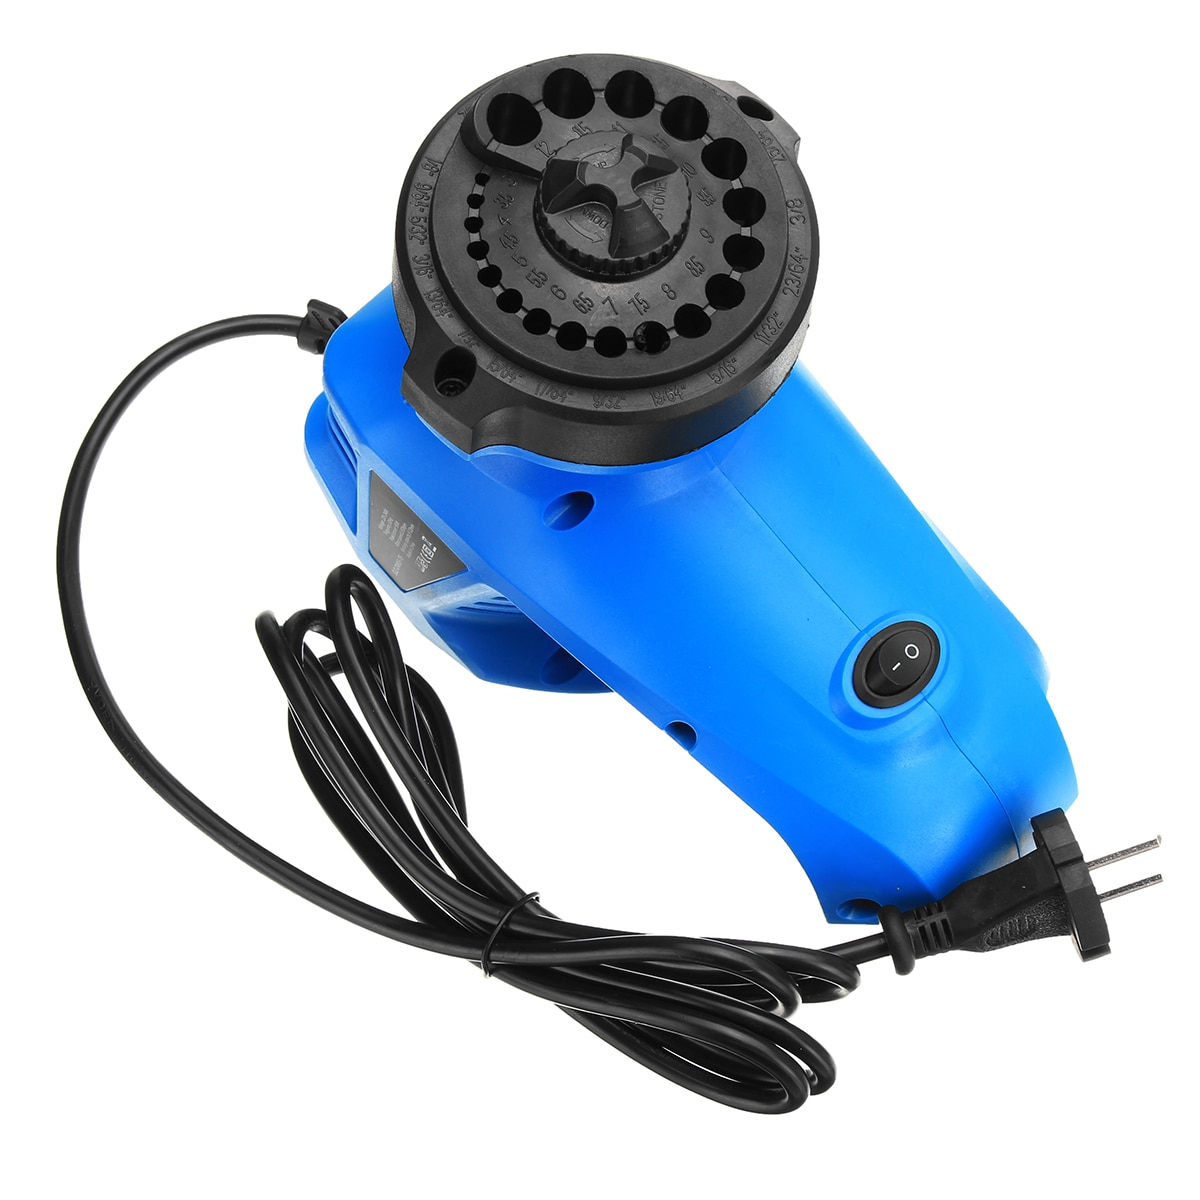 Electric Drill Bit Sharpener Twist Drill Grinding Machine Drill Grinder Drill Milling Machine 3-12mm 220V Sharpening Power Tools